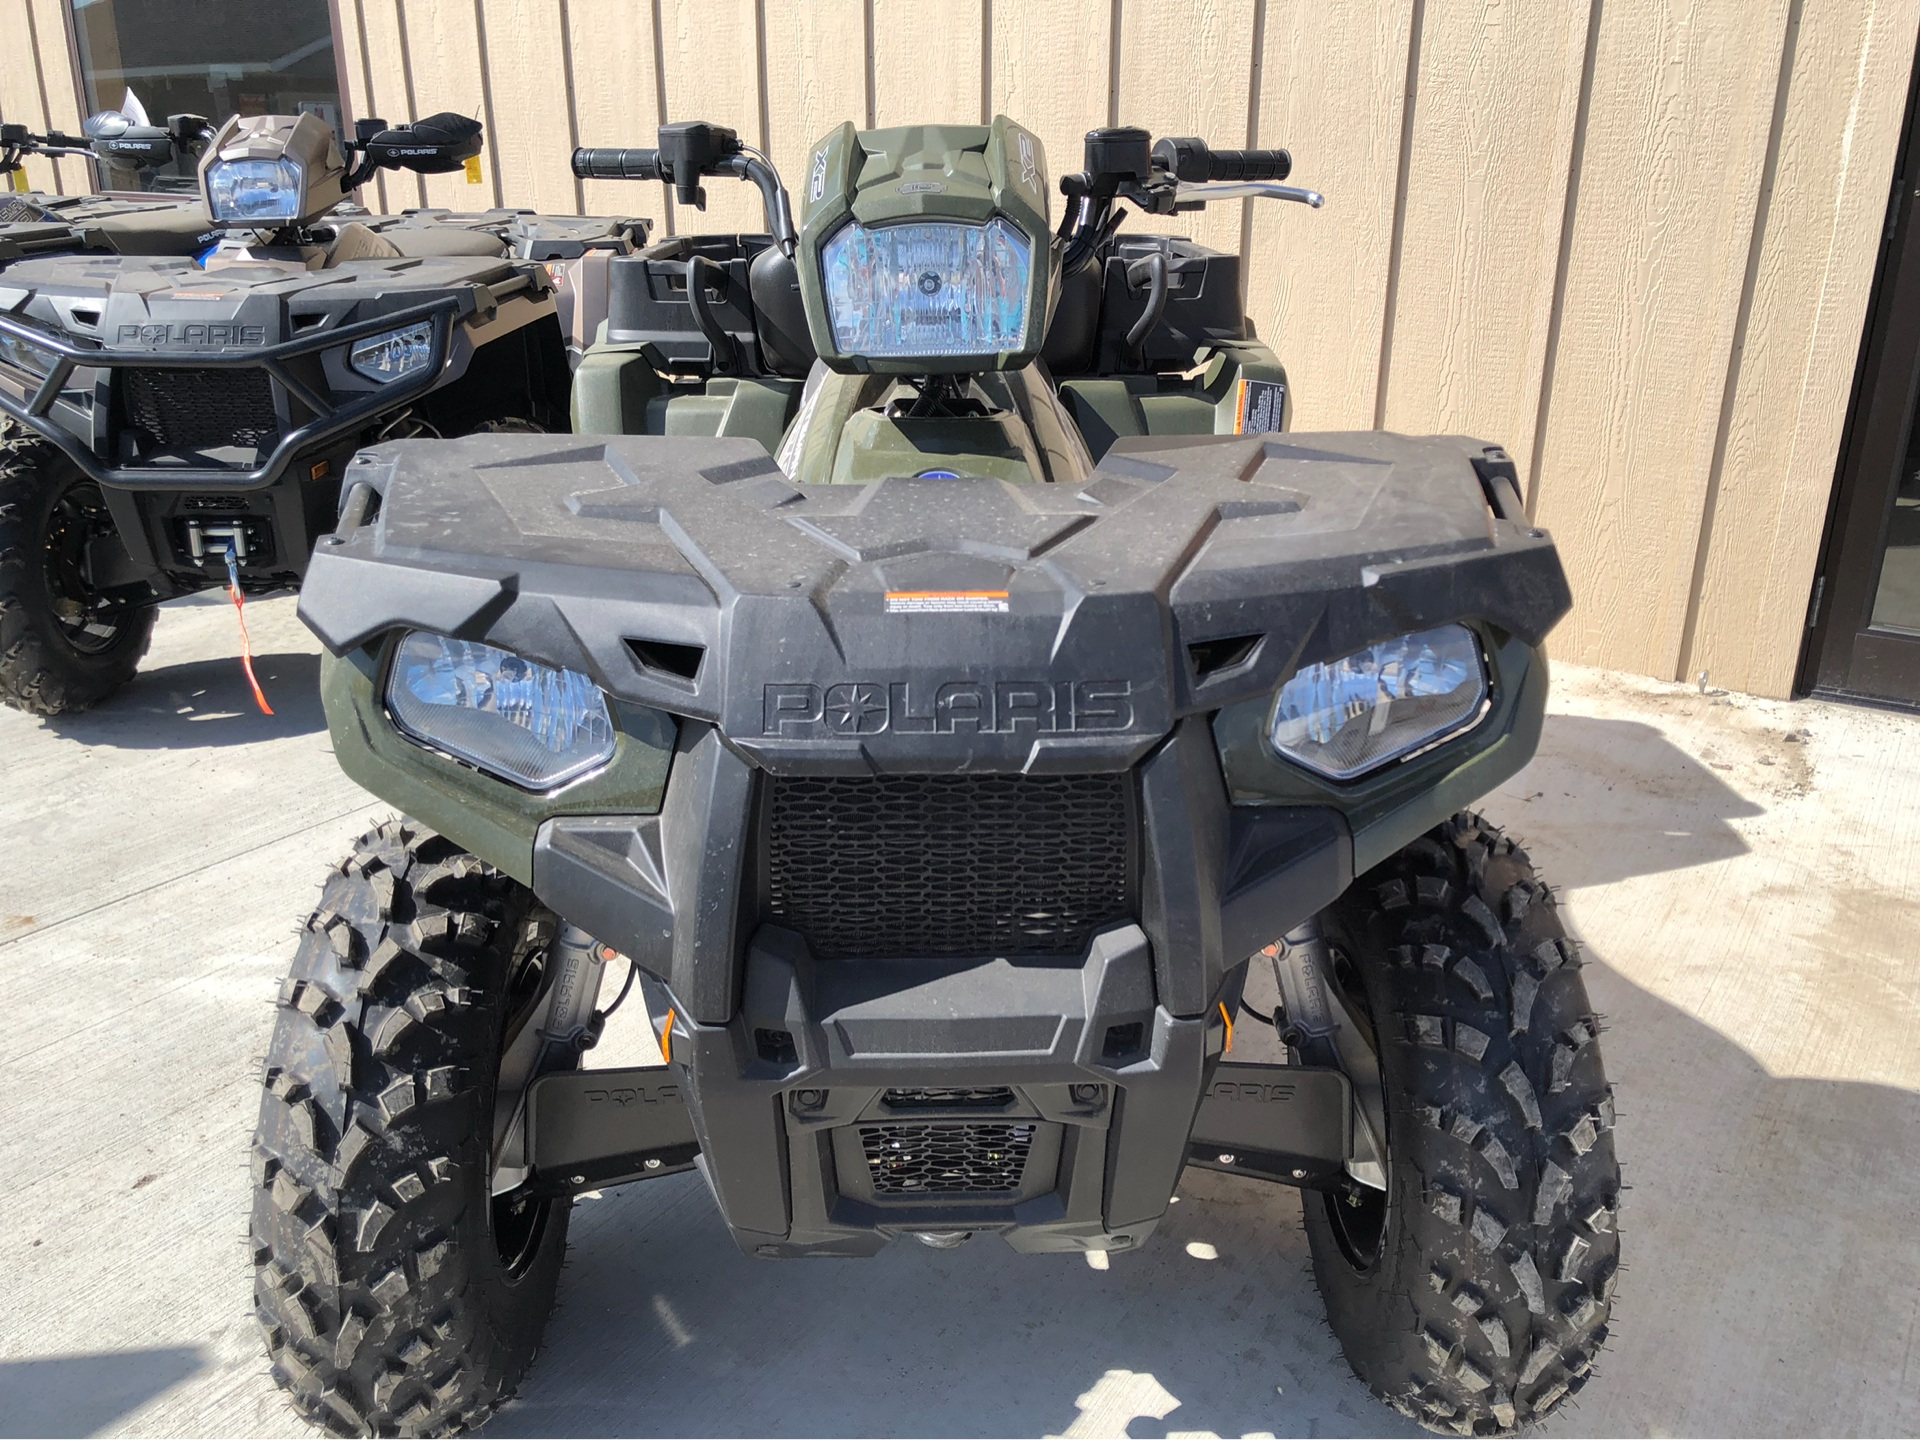 2020 Polaris Sportsman X2 570 in Attica, Indiana - Photo 2